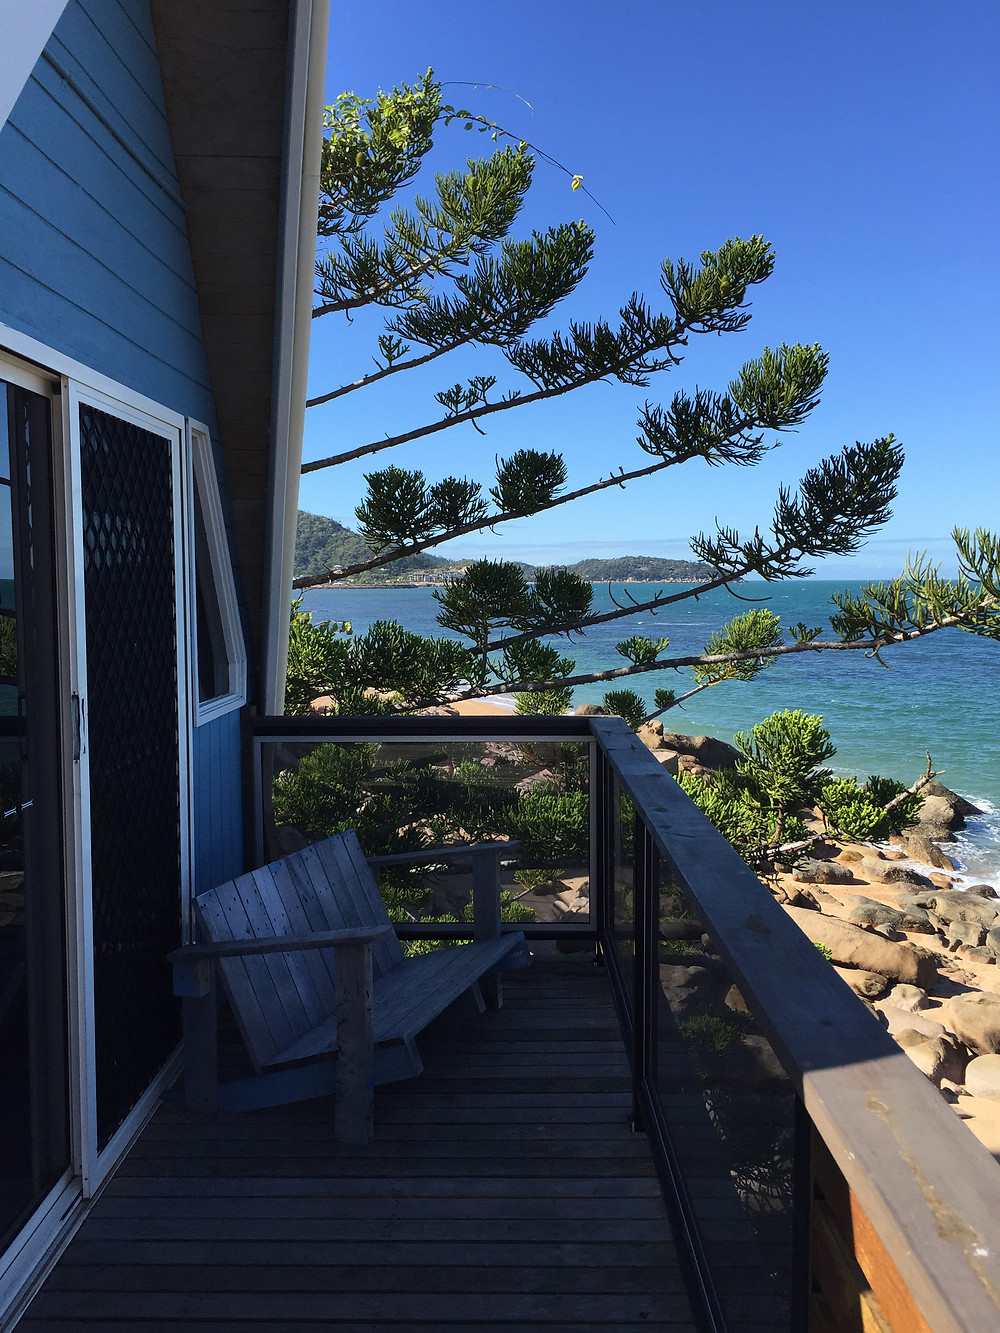 Porch view at Base hostel magnetic island